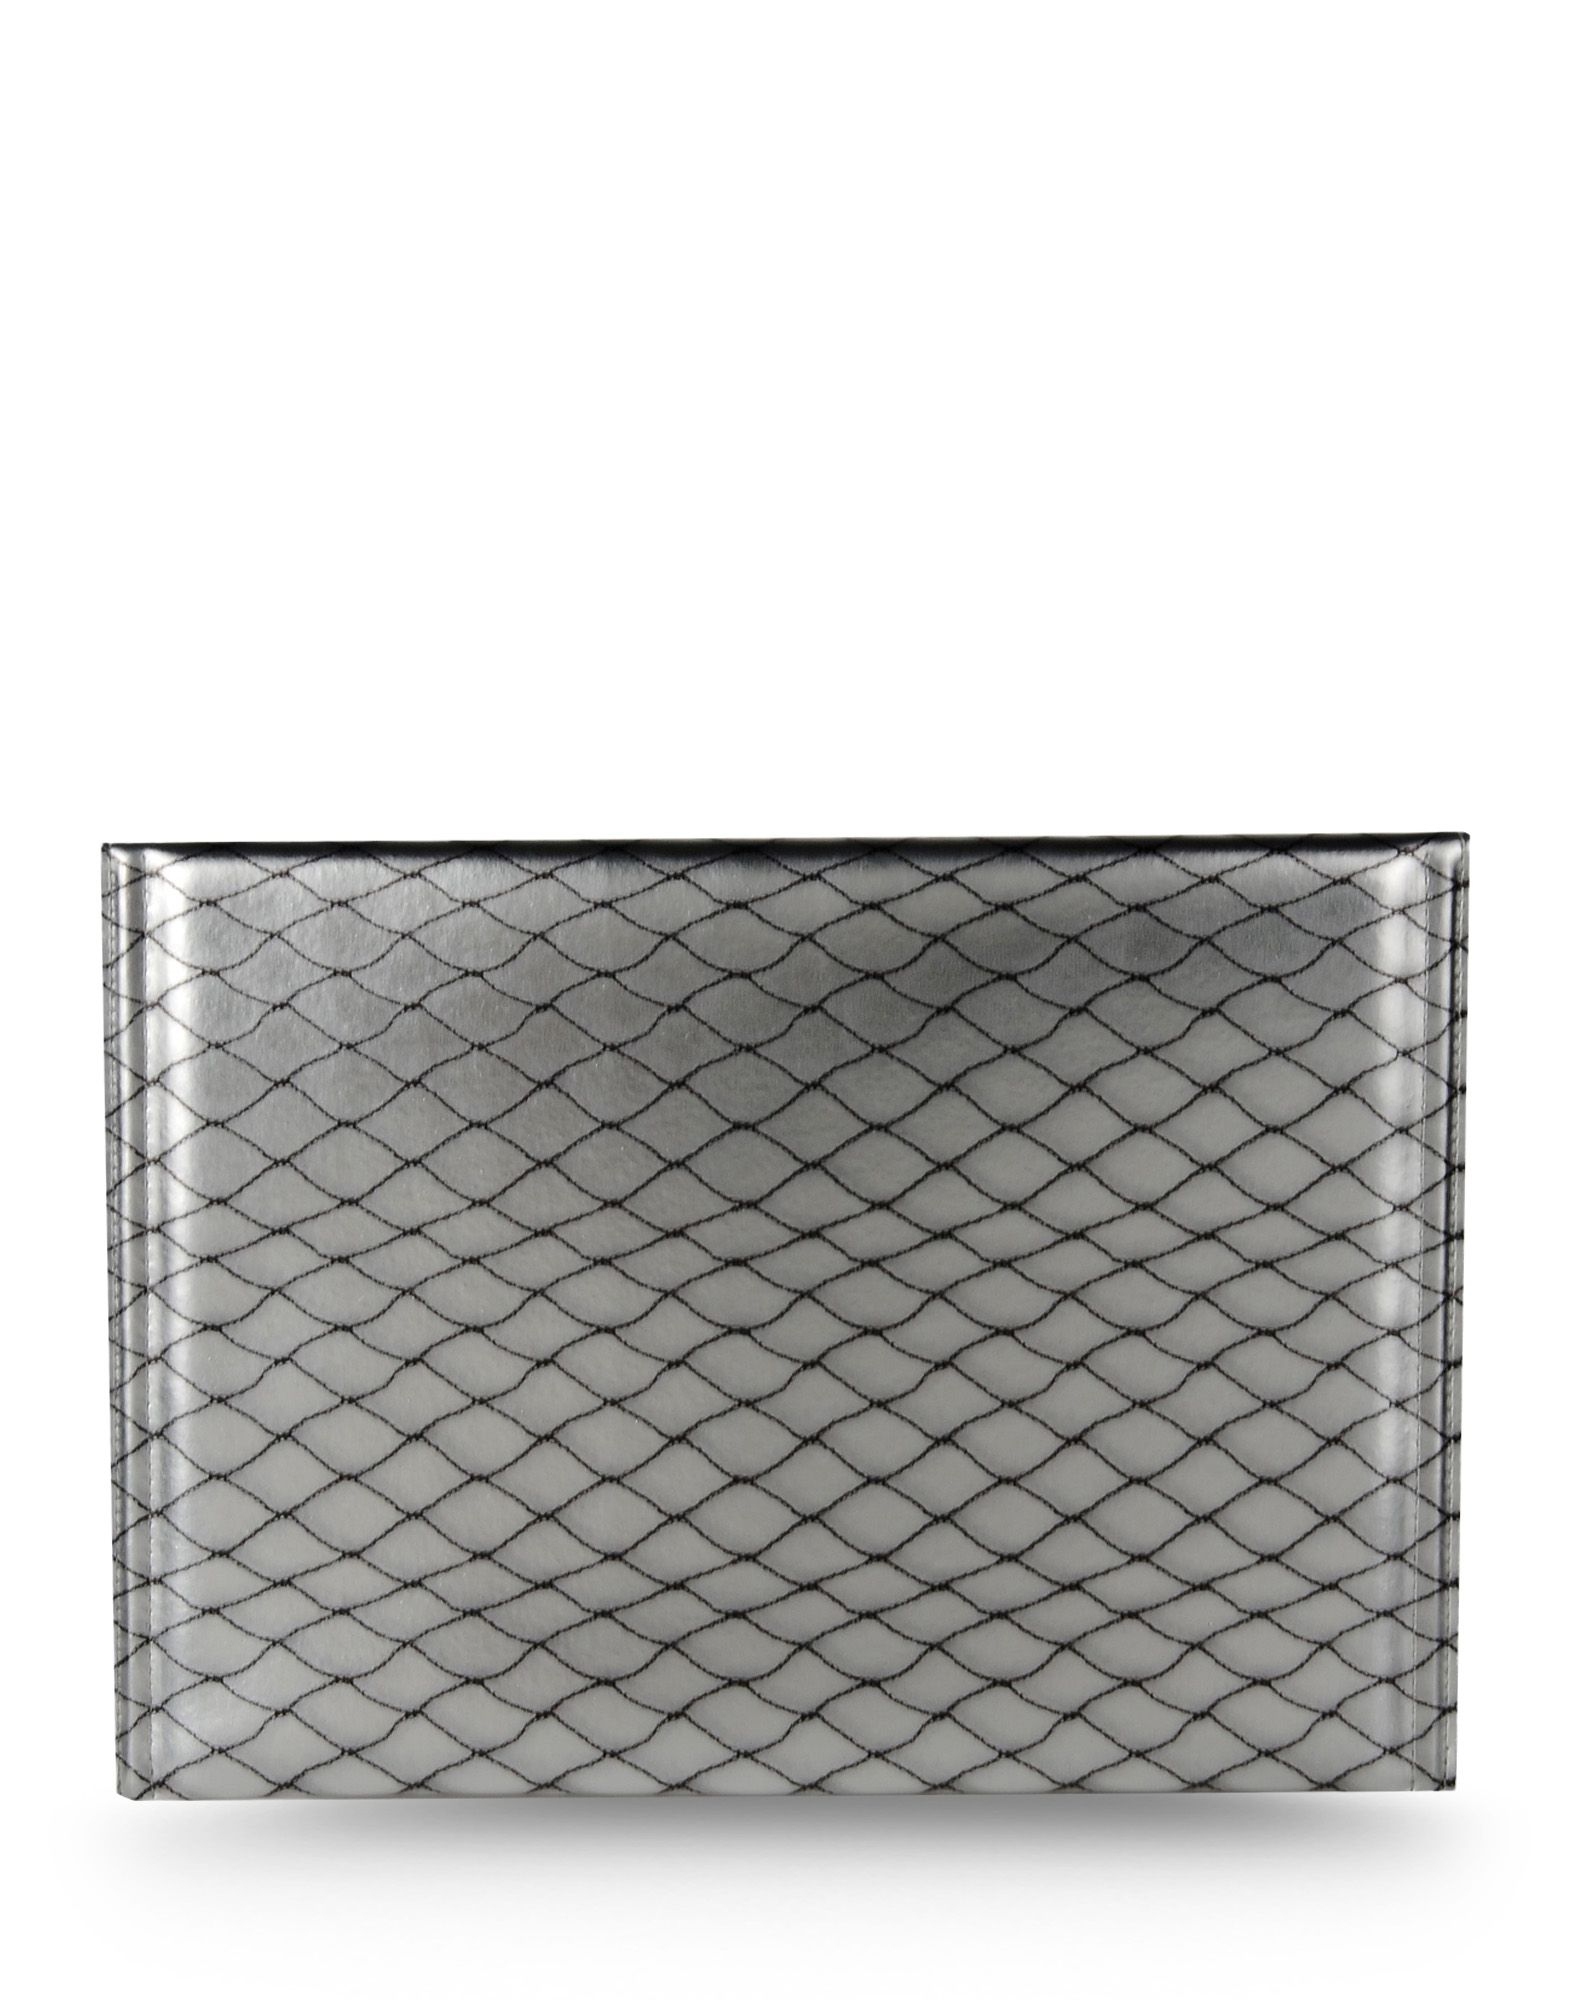 Mm6 by maison martin margiela clutch in white ice lyst for Mm6 maison margiela